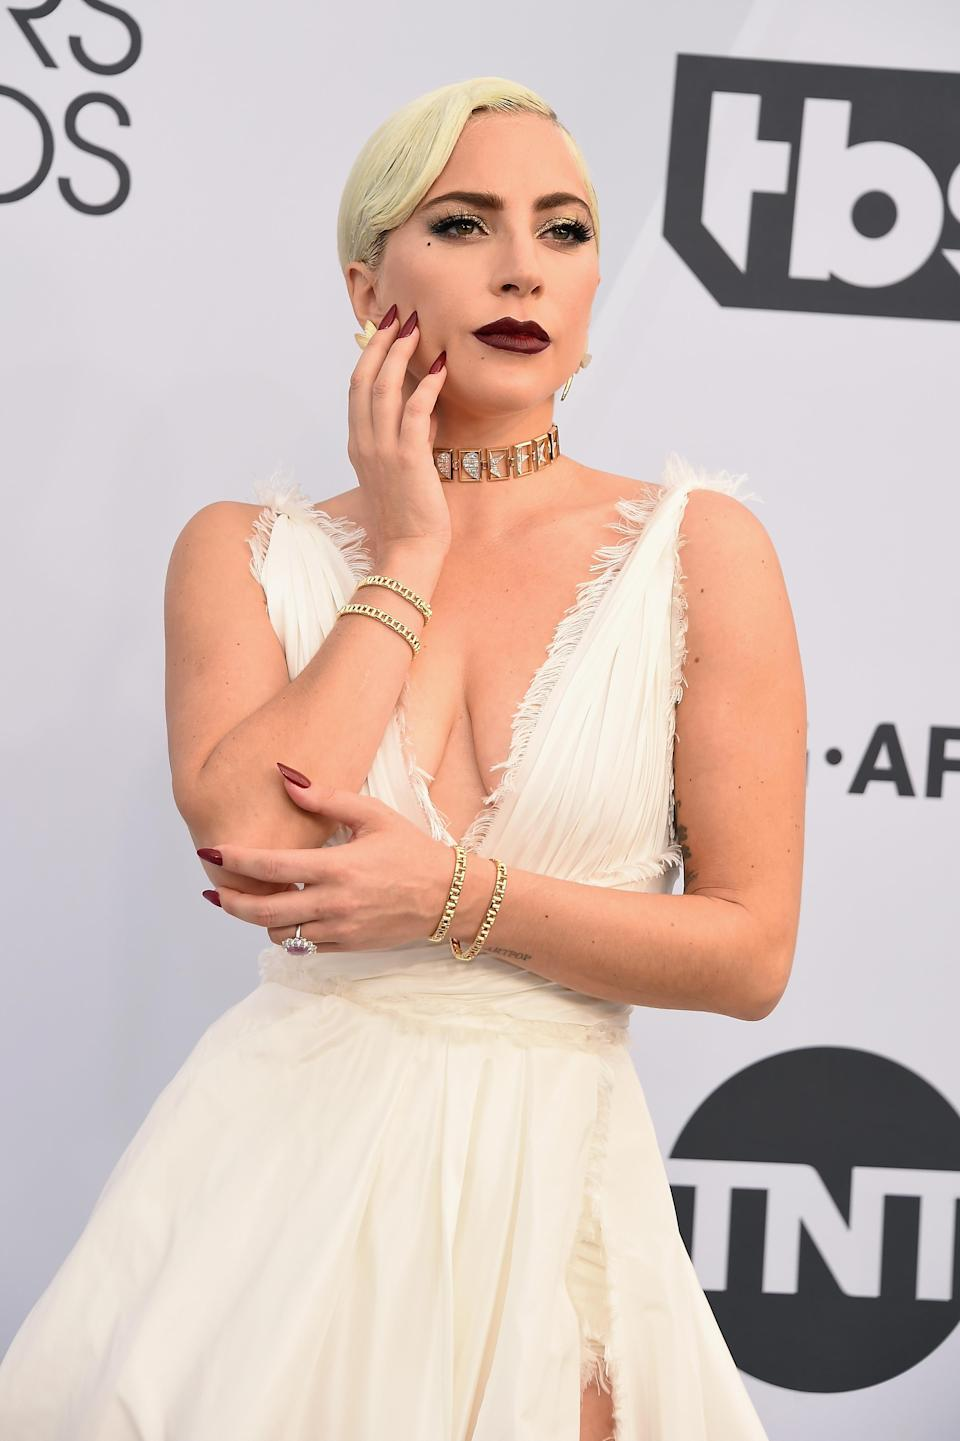 Interestingly, the singer swapped hands in the run-up to calling off her engagement [Photo: Getty]